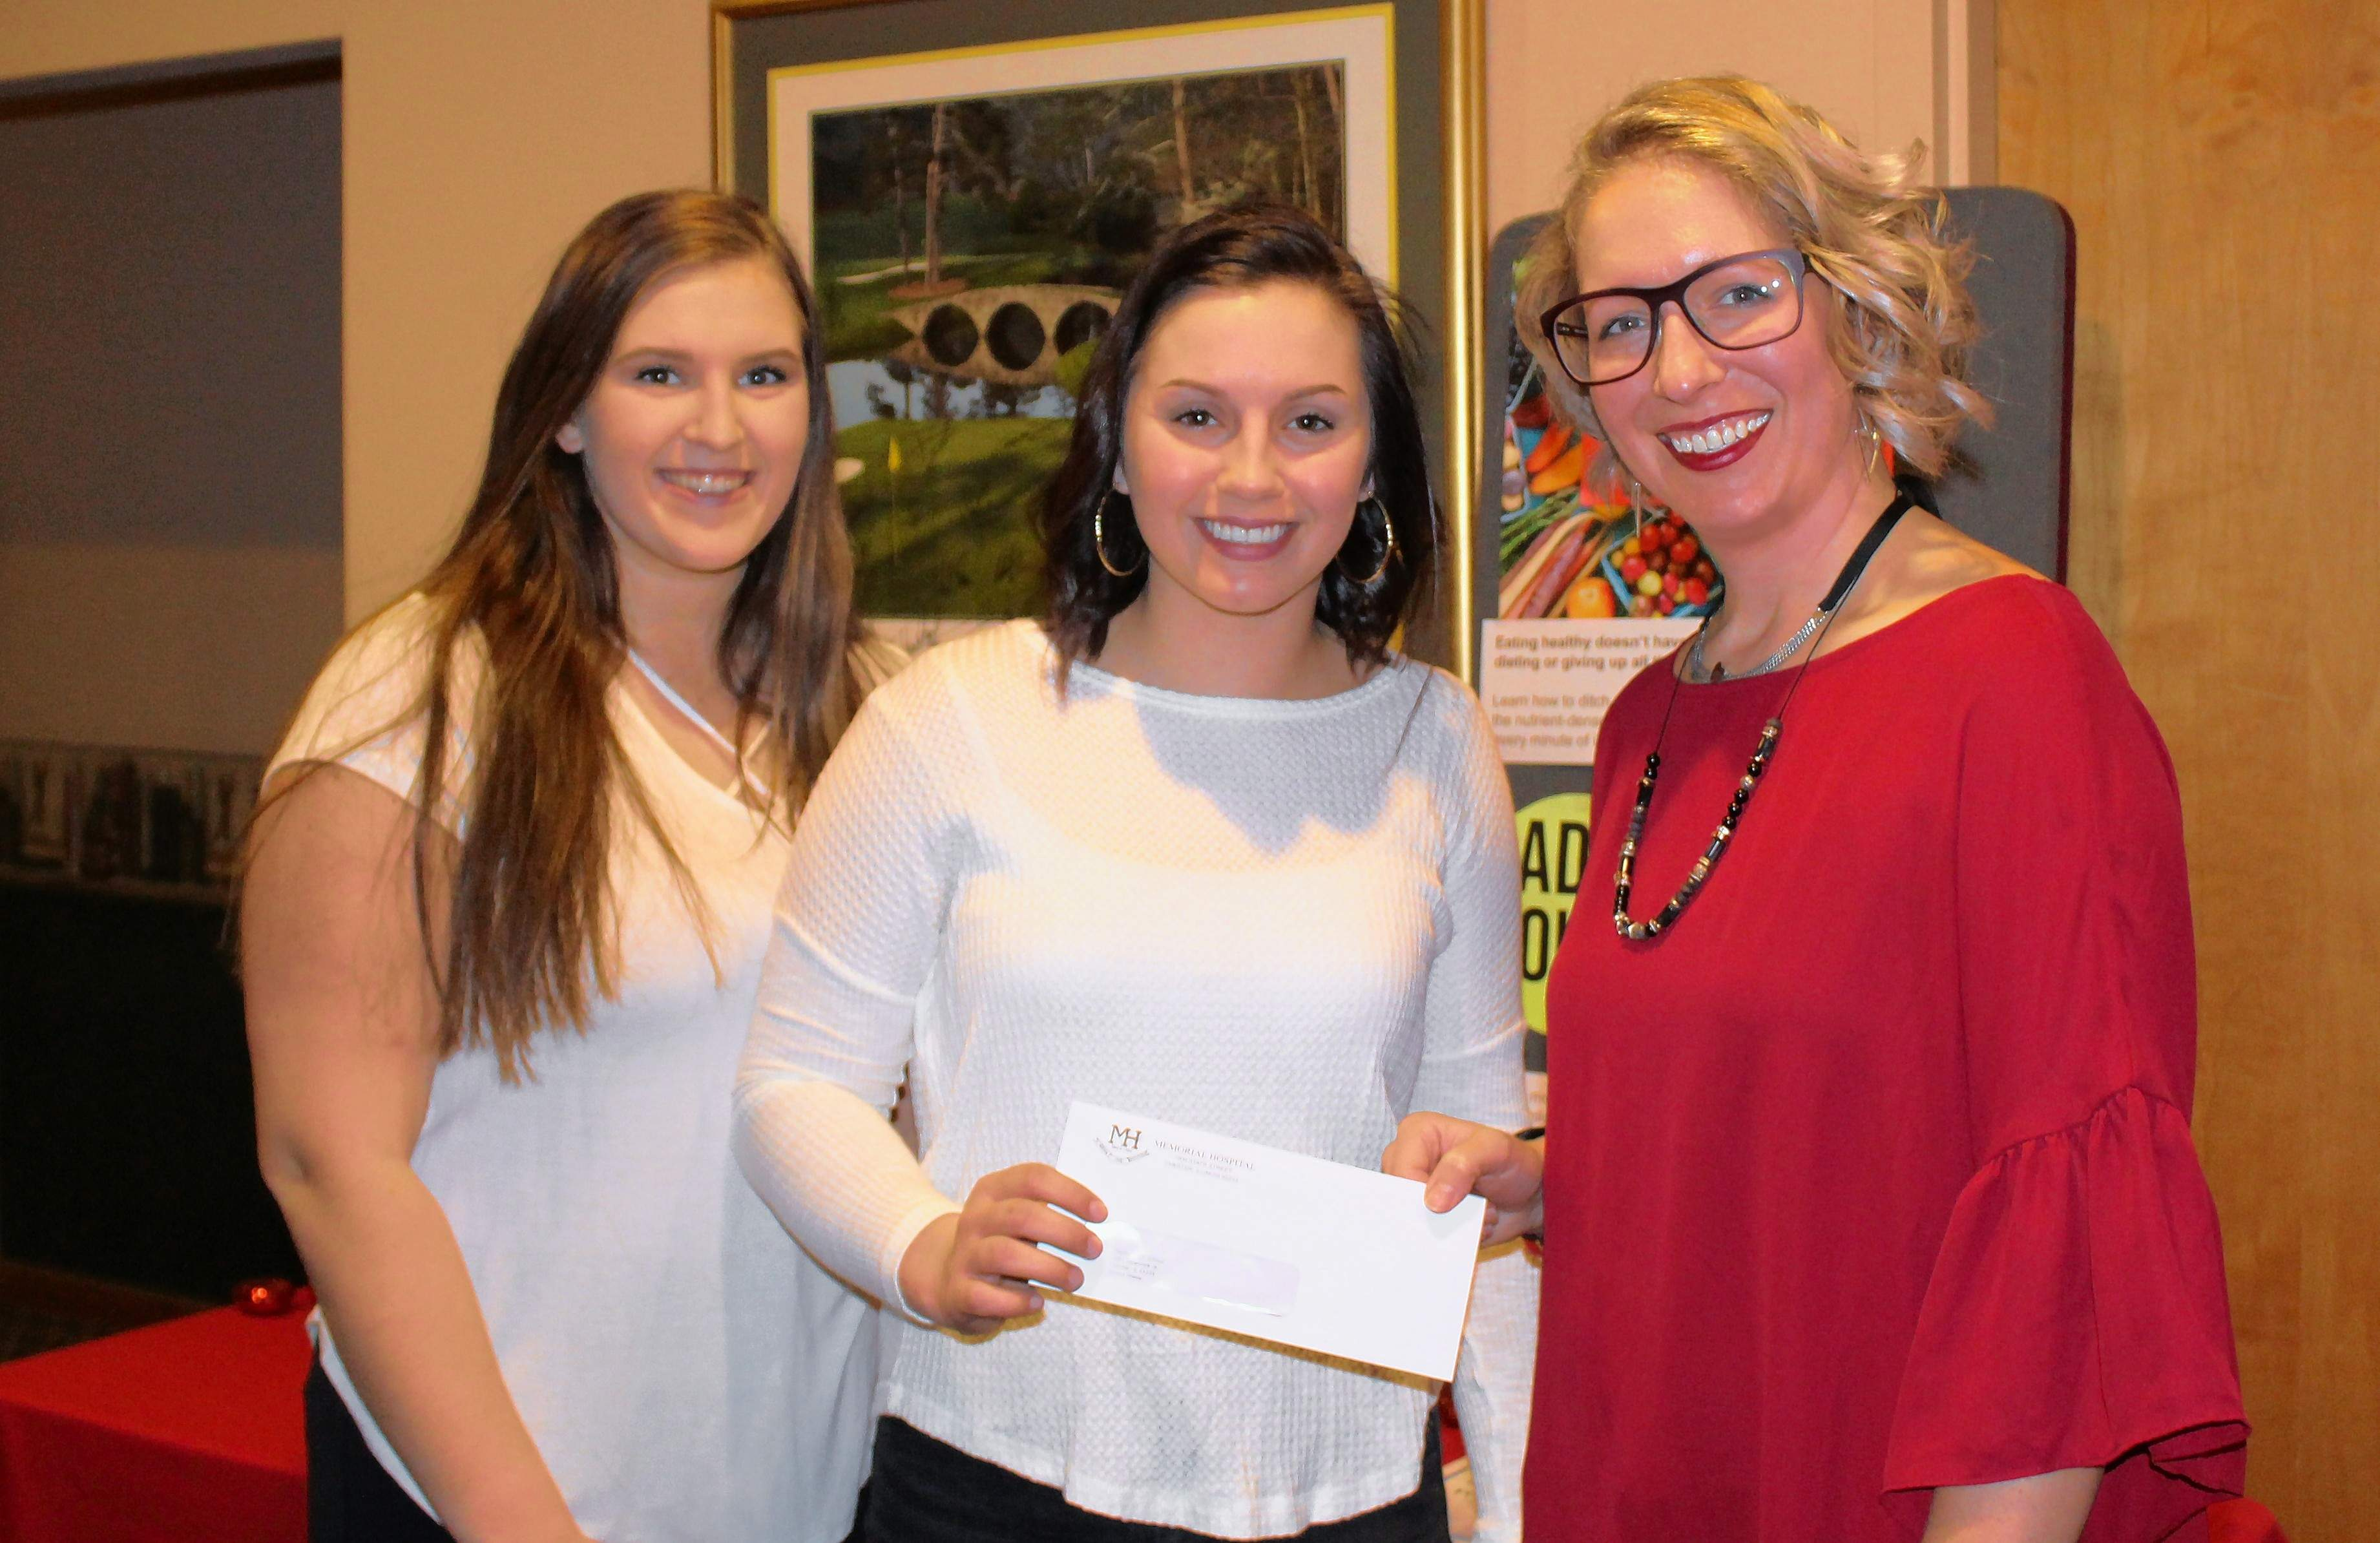 From left, National Honor Society students Lauryn Vasquez and Shea Petrowske with Mariah Bargman, community relations coordinator for the hospital.